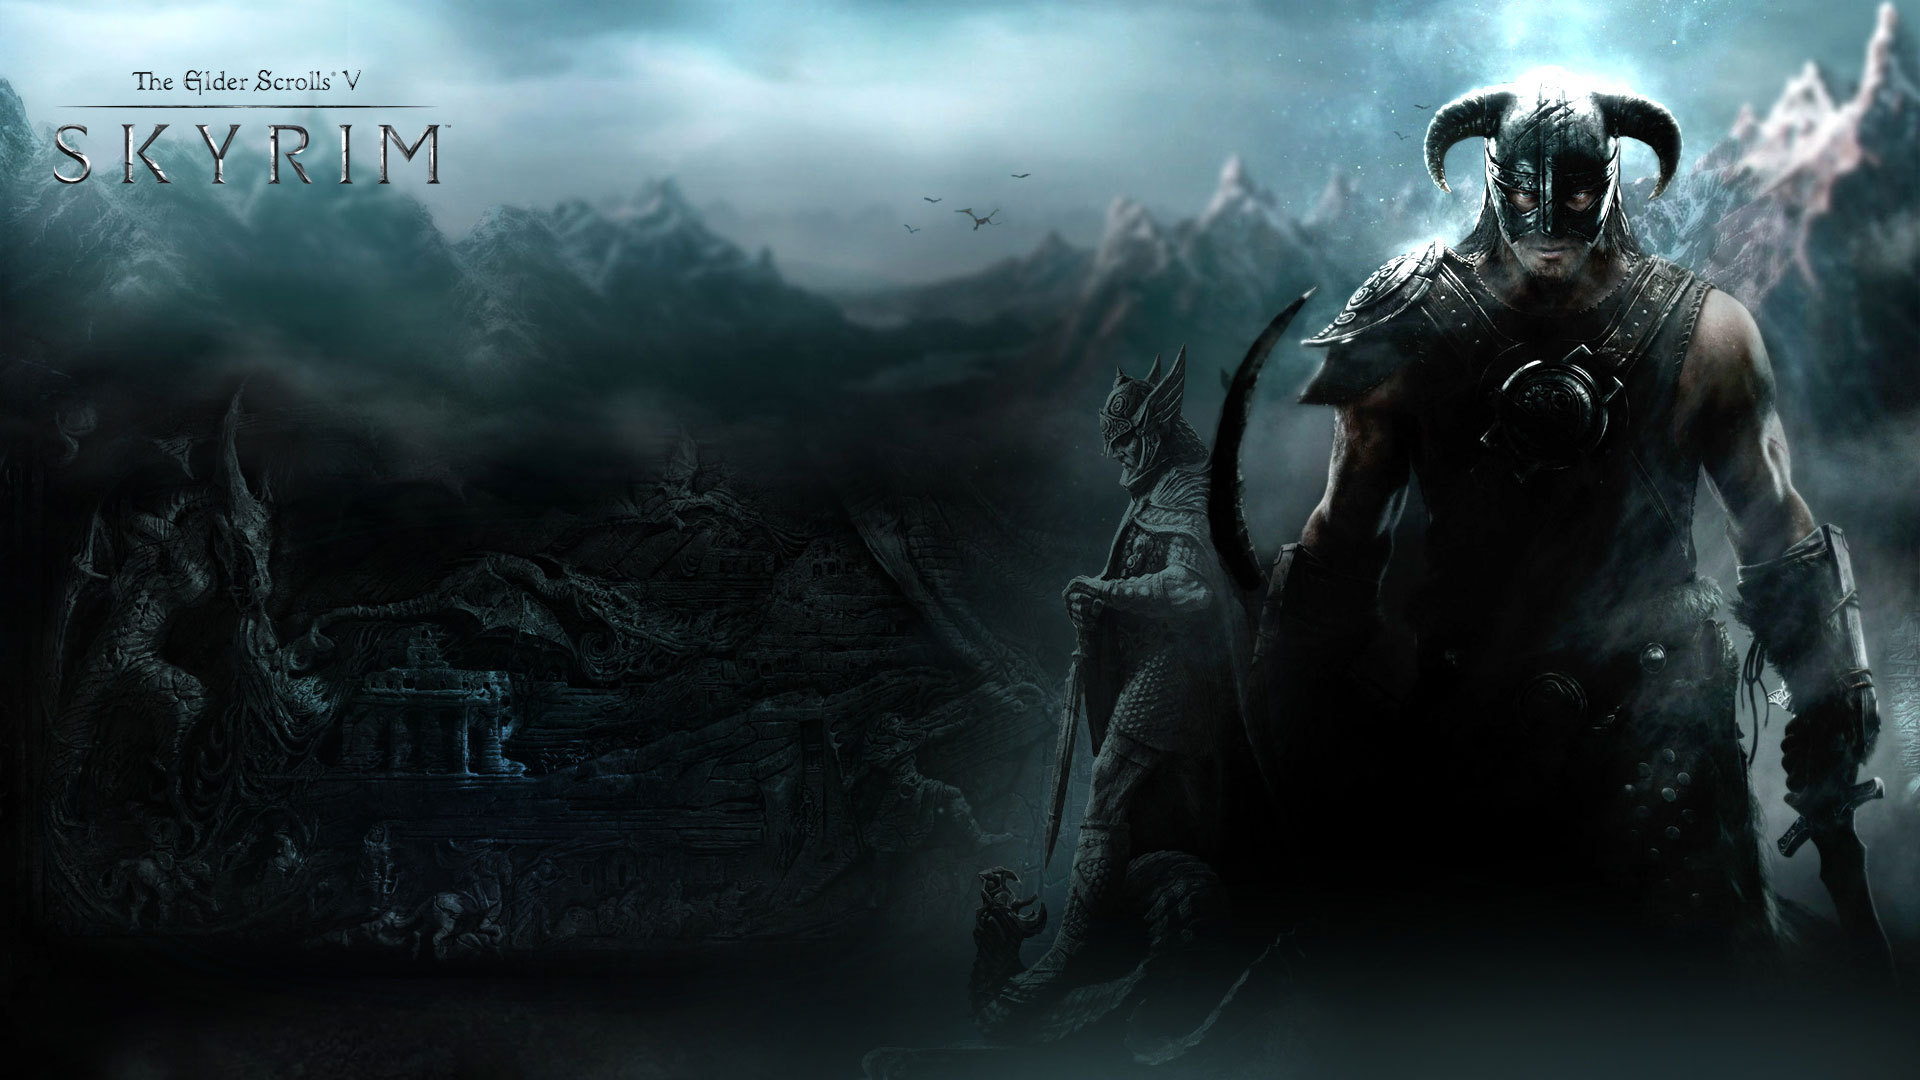 Wallpaper The Elder Scrolls V: Skyrim Highlander